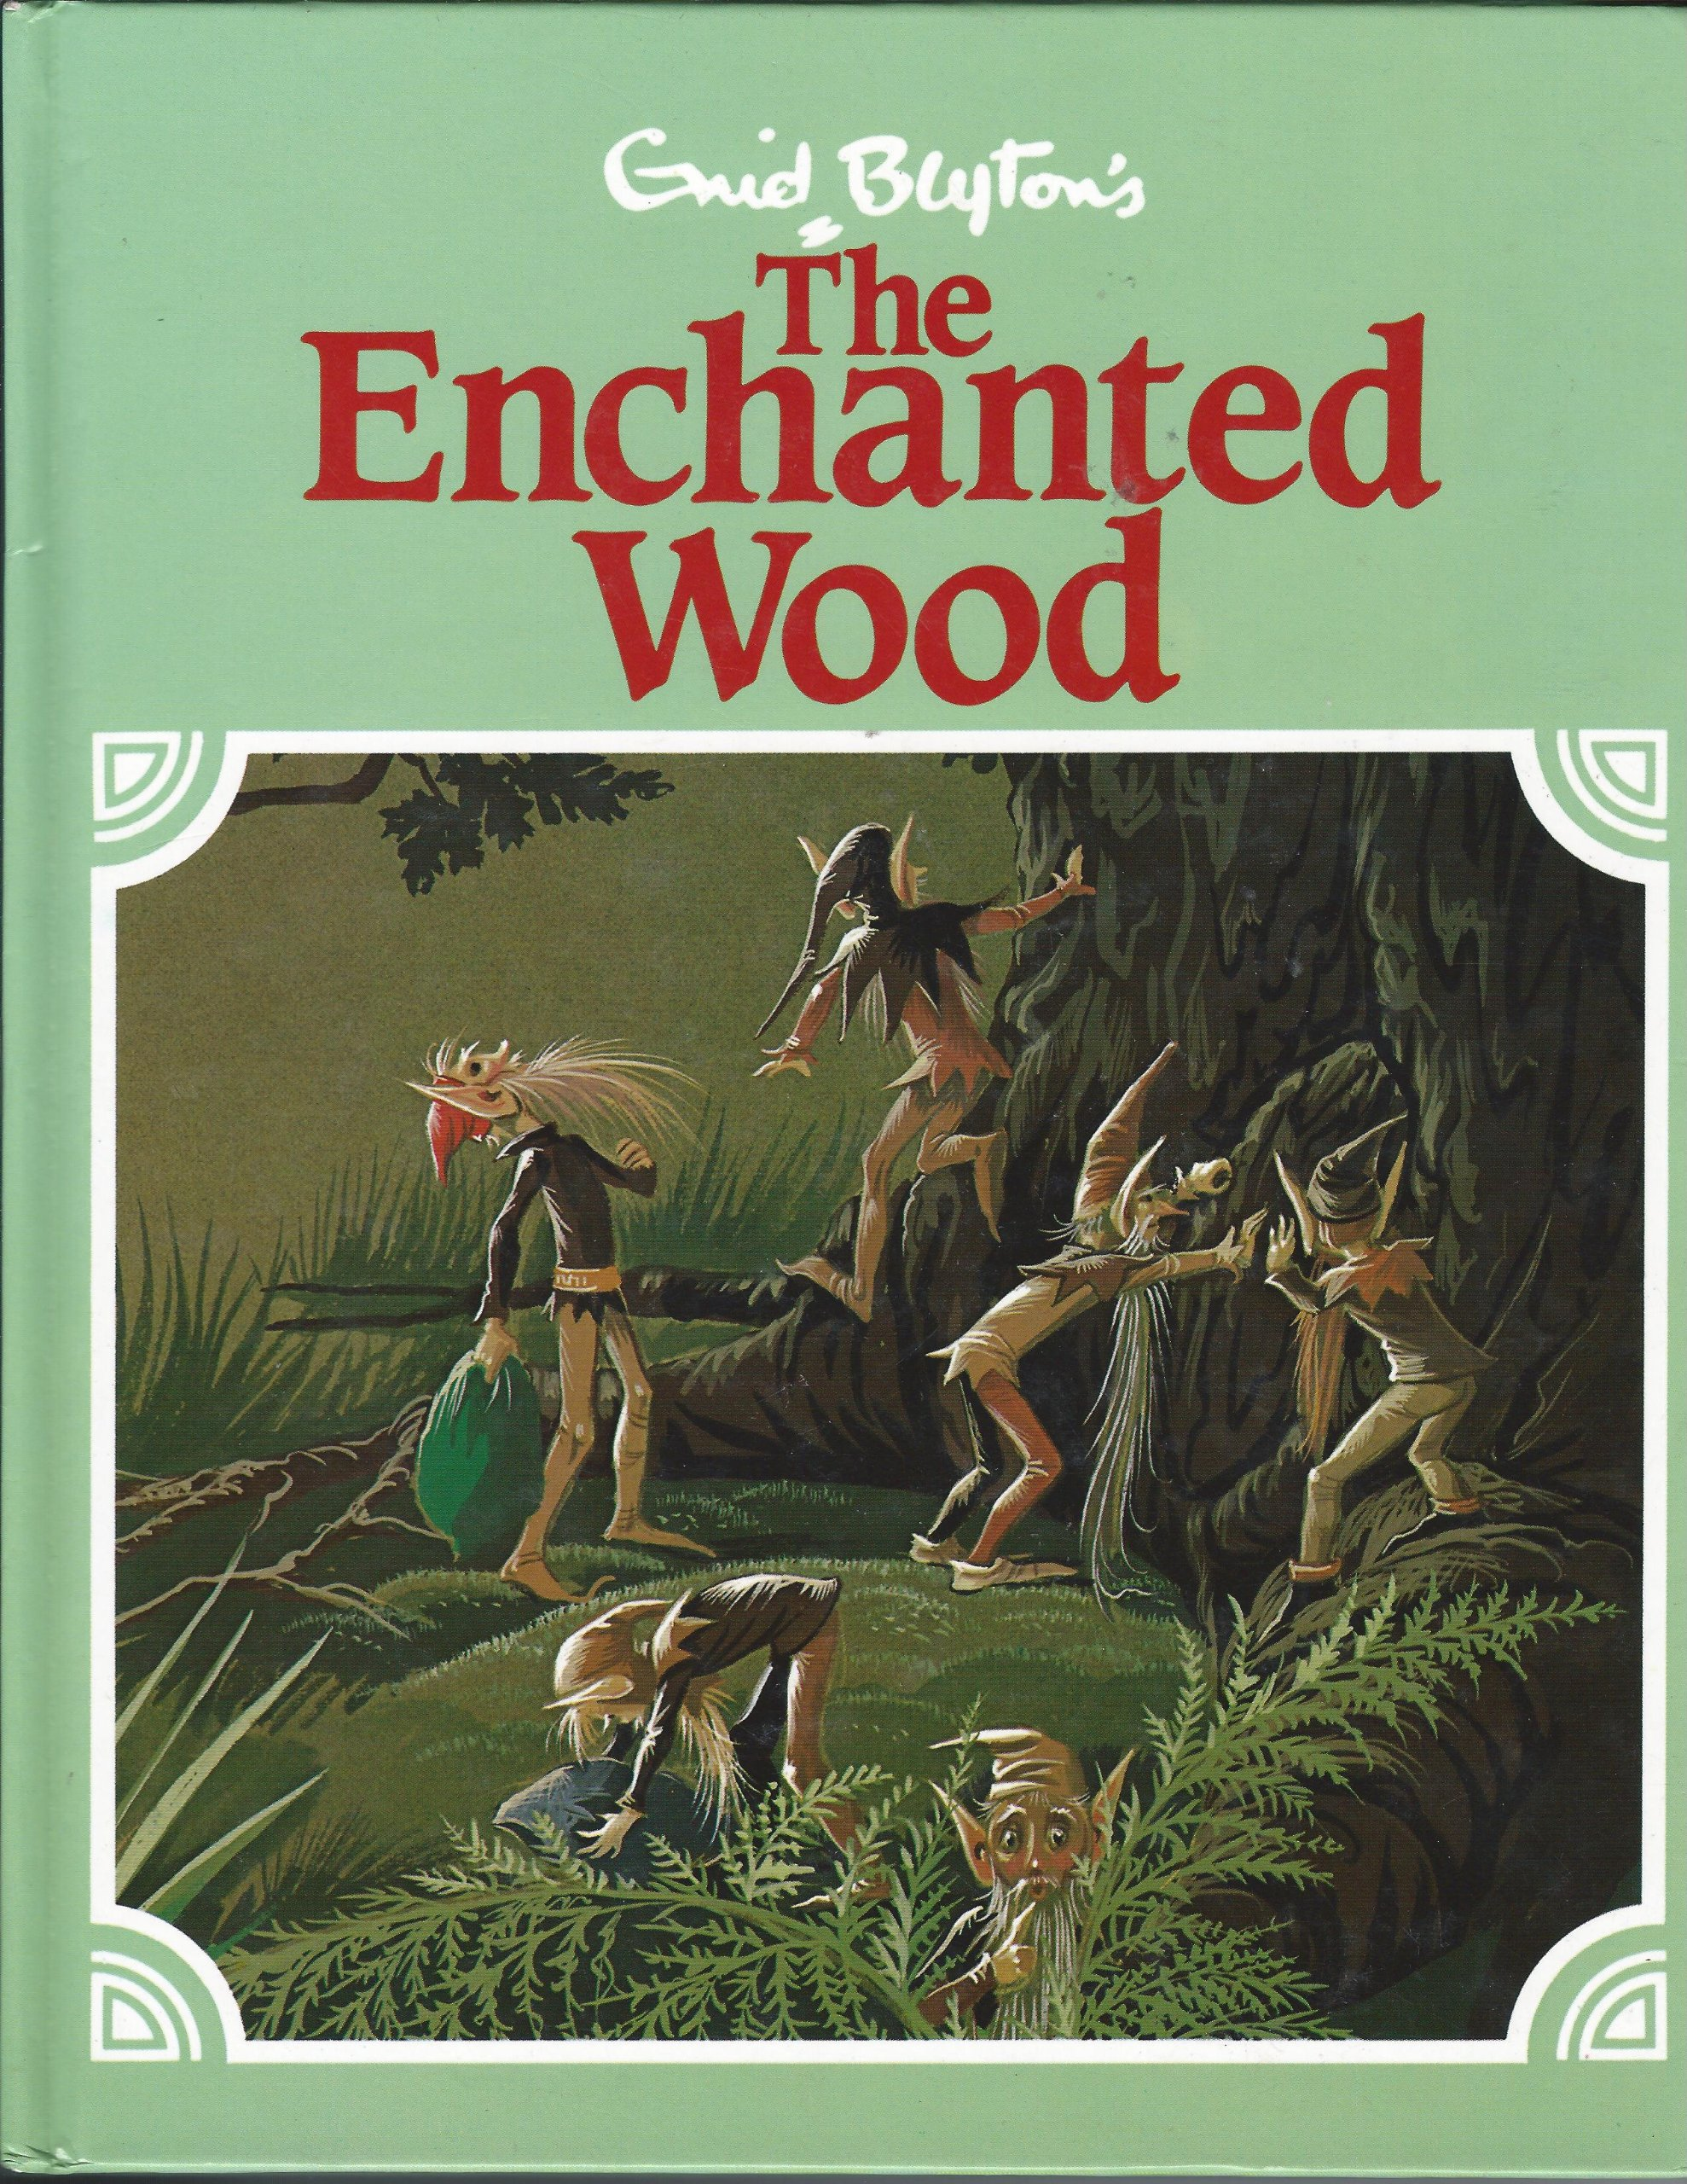 ENID BLYTON ENCHANTED WOOD PDF DOWNLOAD